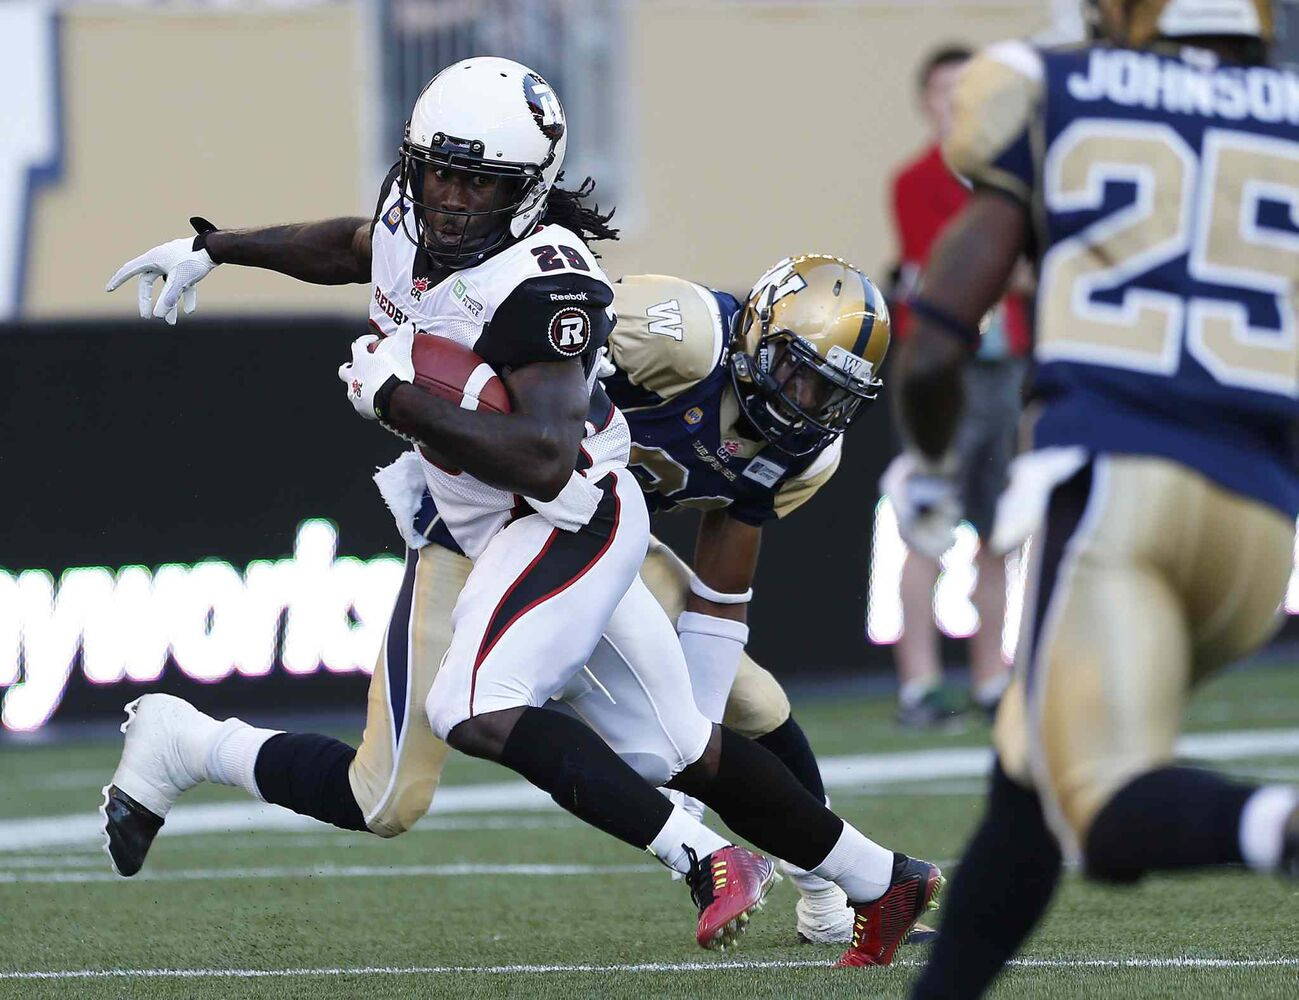 Ottawa Redblacks' Chevon Walker (29) breaks the tackle by Winnipeg Blue Bombers' Maurice Leggett (31) and runs the ball in for the touchdown during the first half of CFL action in Winnipeg on Thursday. (John Woods/ The Canadian Press)